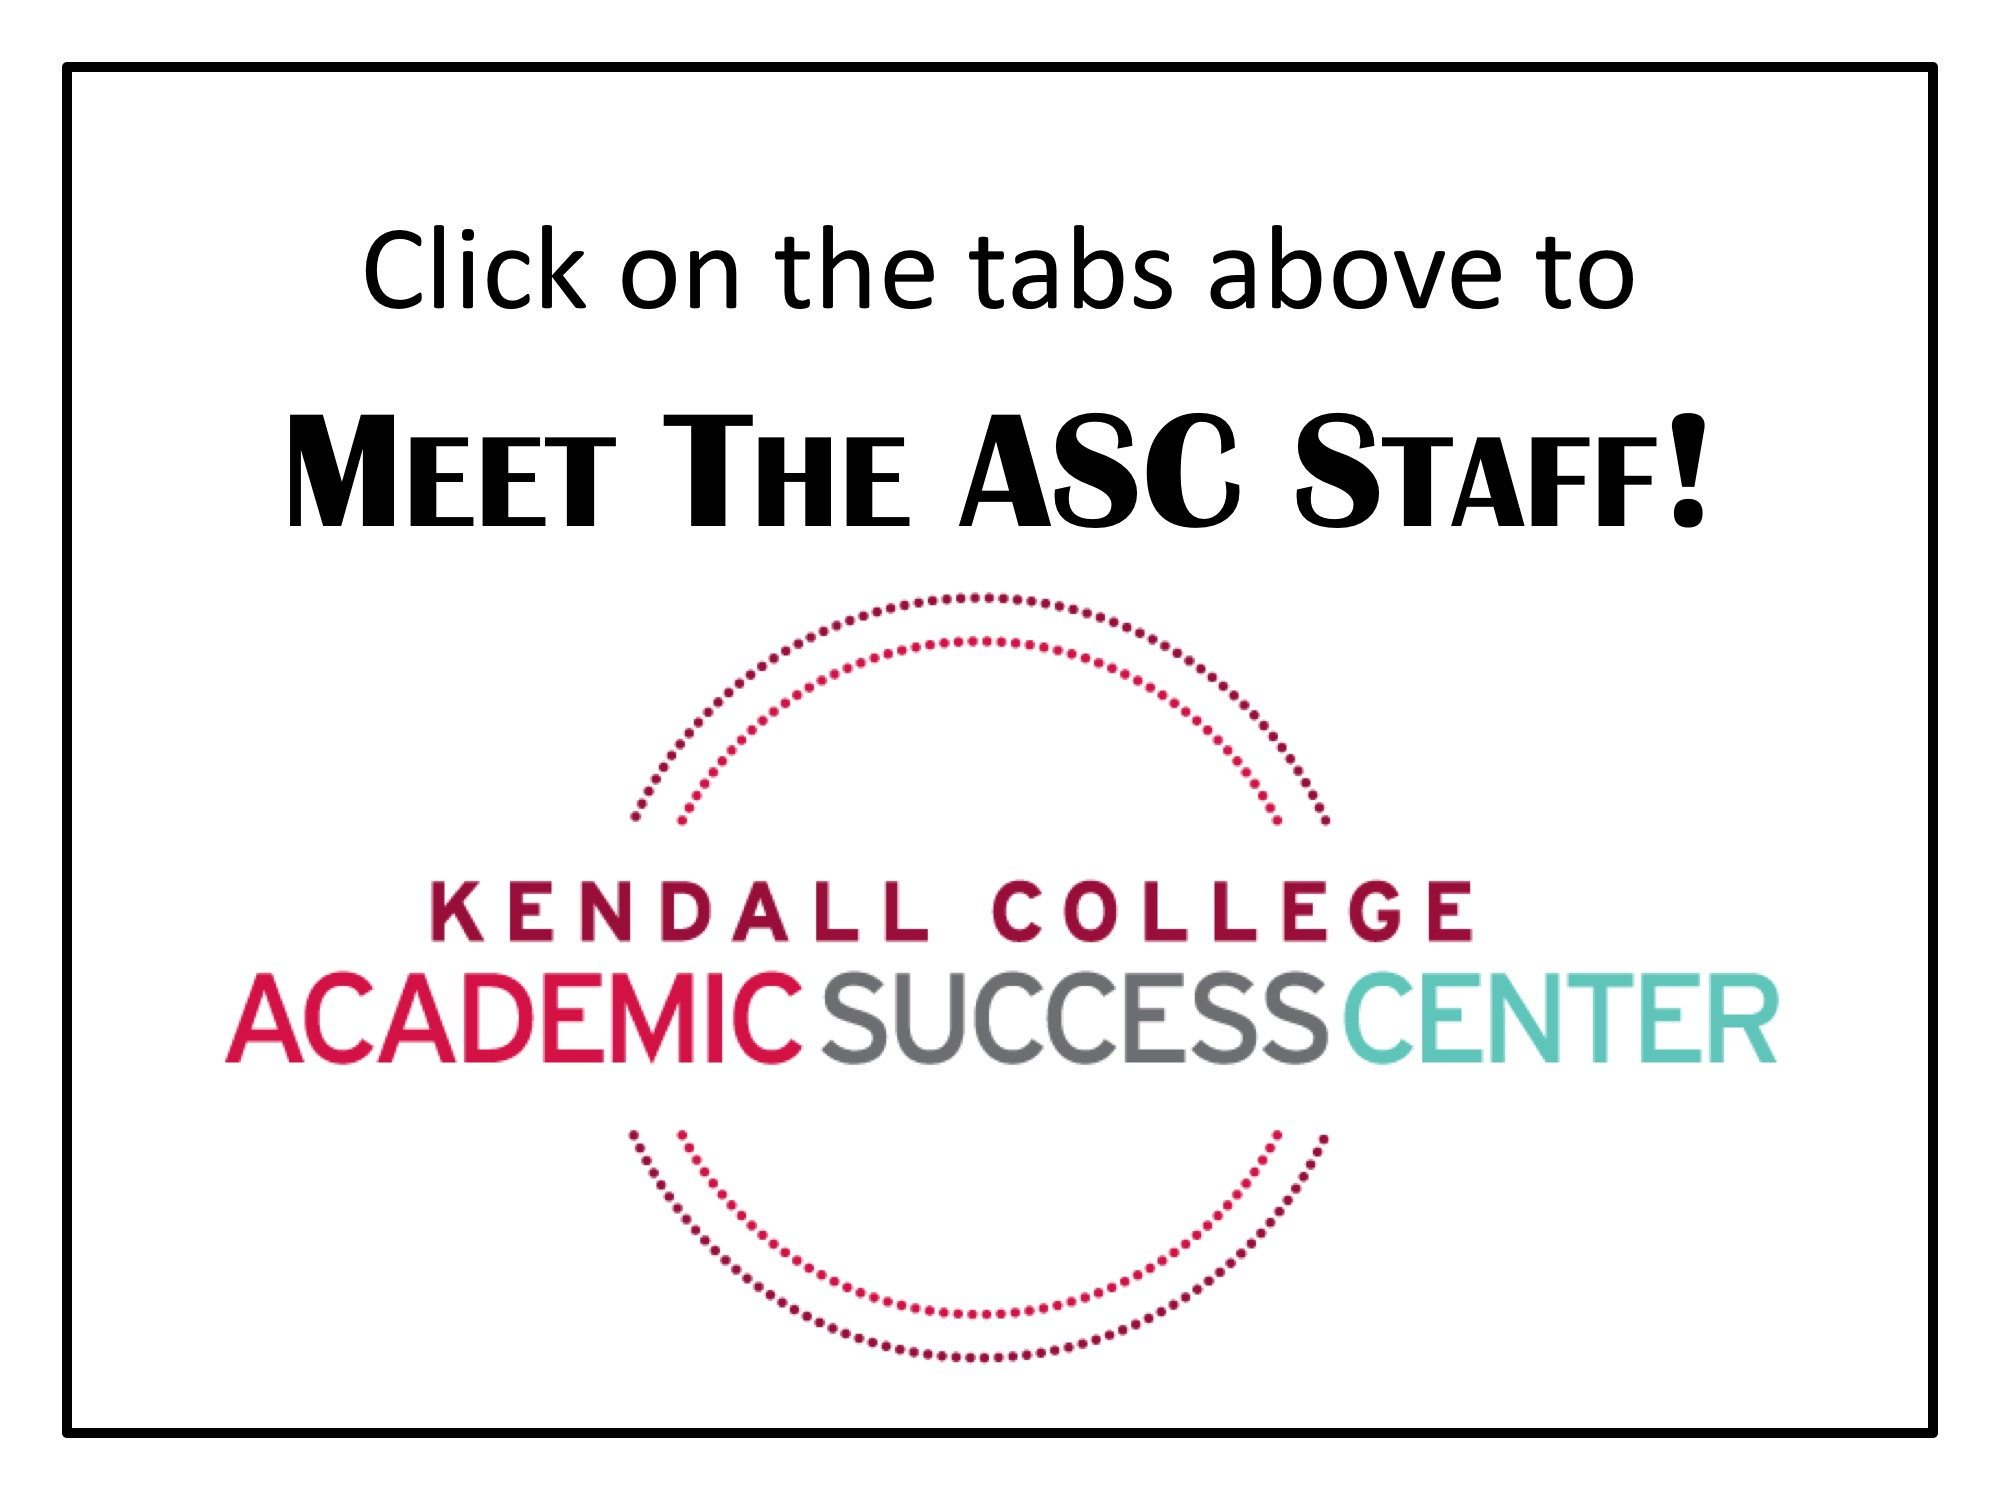 Meet the ASC Staff